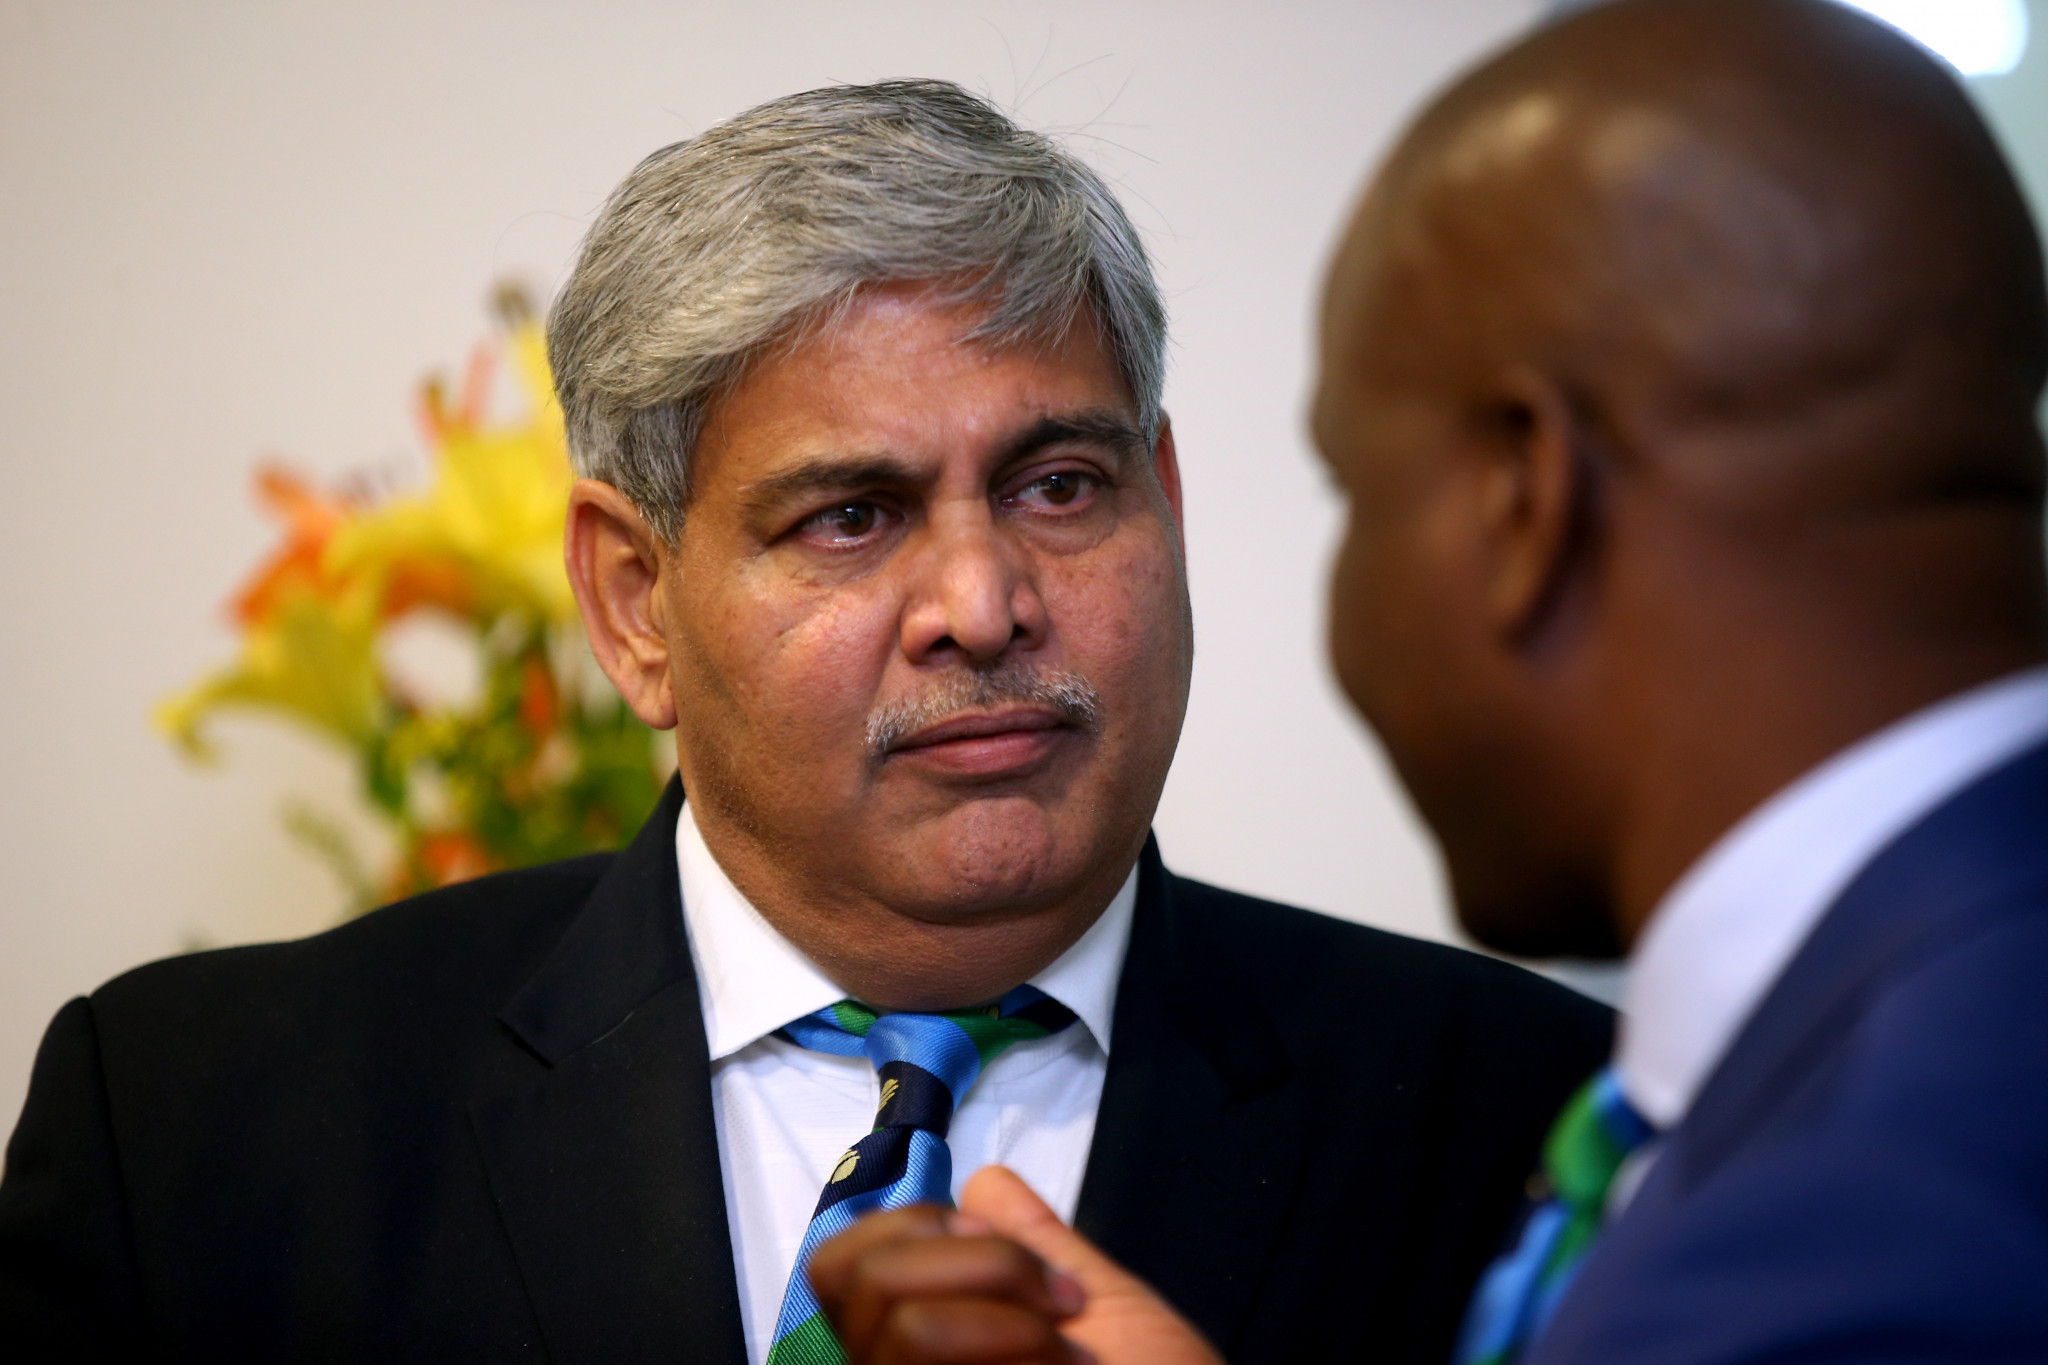 ICC chairman Shashank Manohar said what had happened in Zimbabwe represented a serious breach of the constitution ©Getty Images